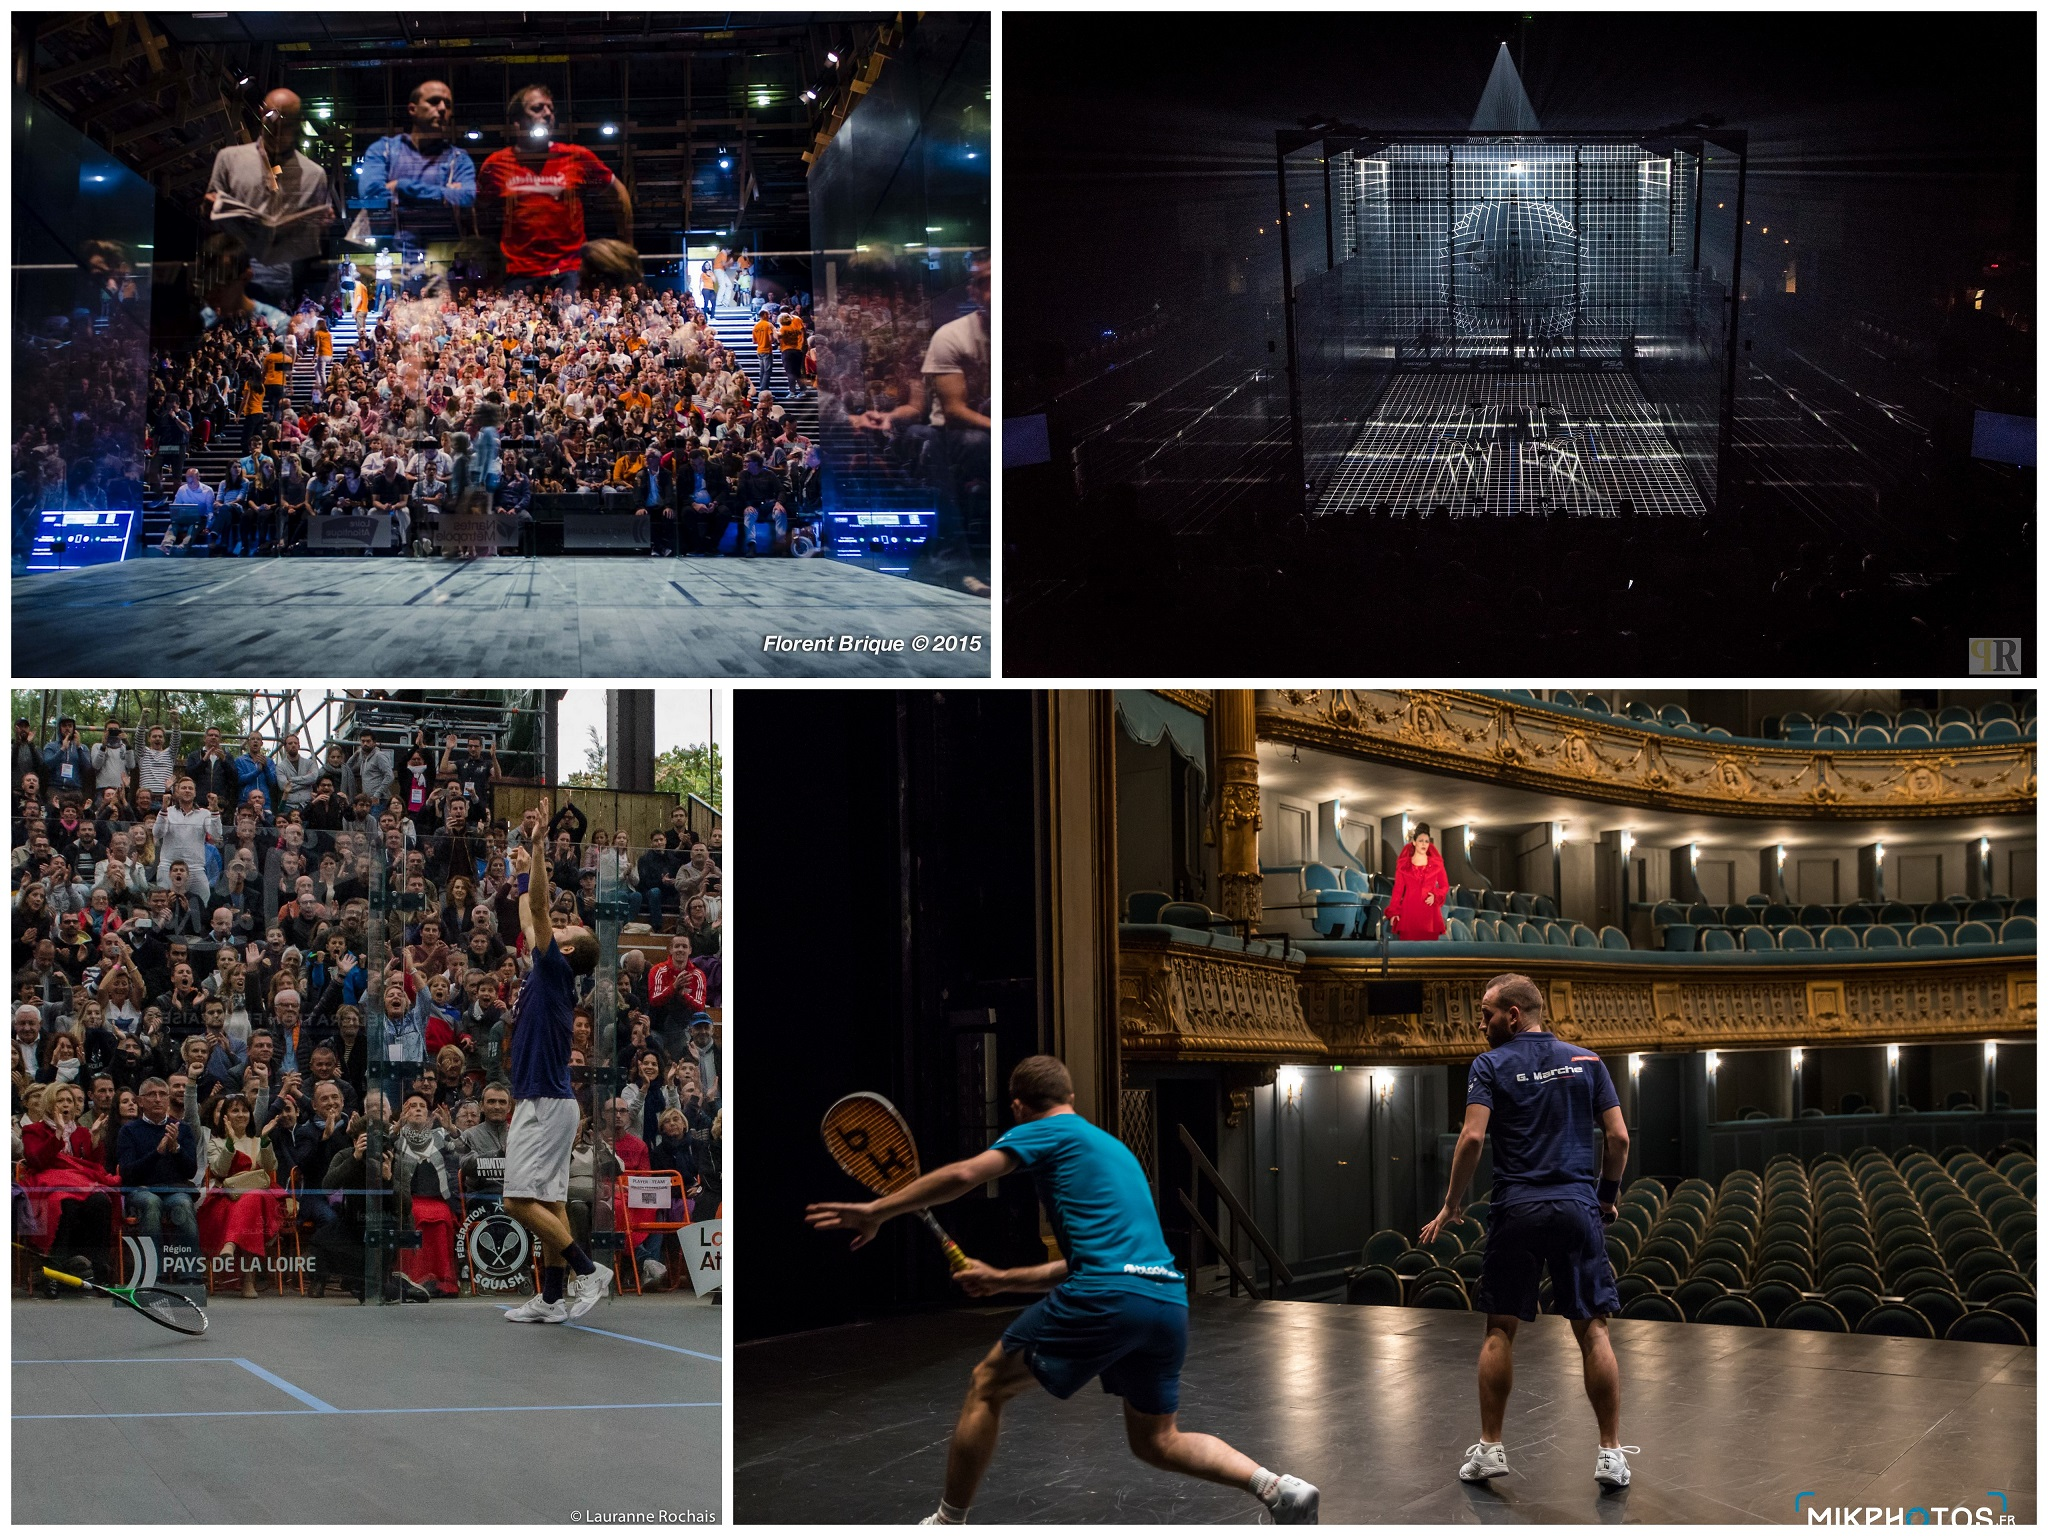 OPEN INTERNATIONAL DE NANTES : LES TÉNORS DU SQUASH S'INVITENT À L'OPÉRA !